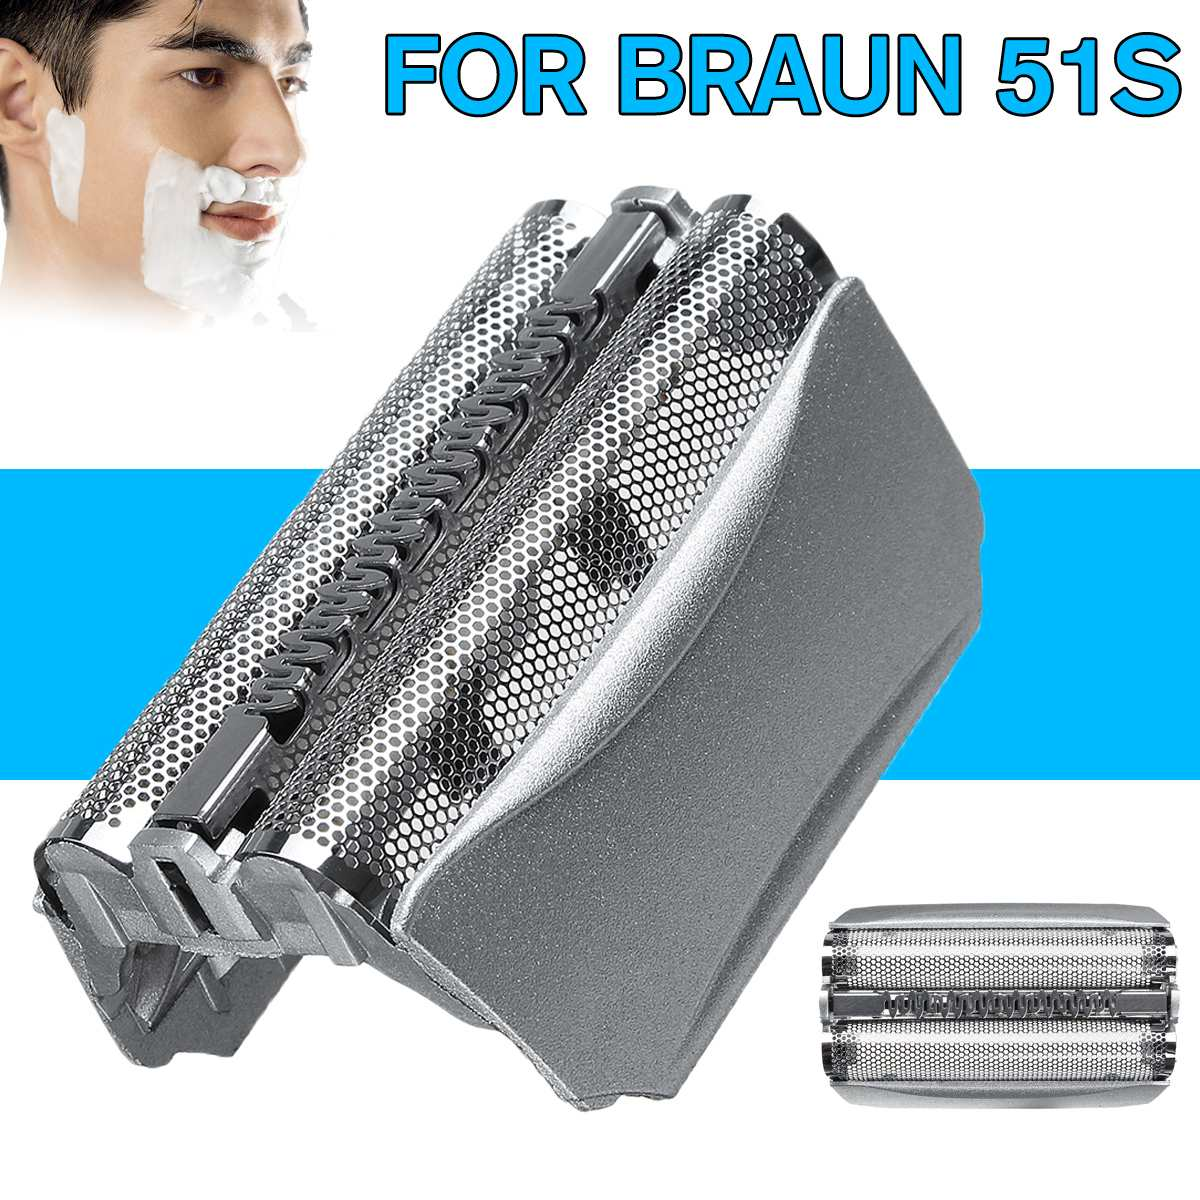 51S Foil Frame Replace Head For Braun Shaver 8000 Series 5 Activator Fit 550 570cc 5643 5644 5645 8970 8975 8985 8986 8995